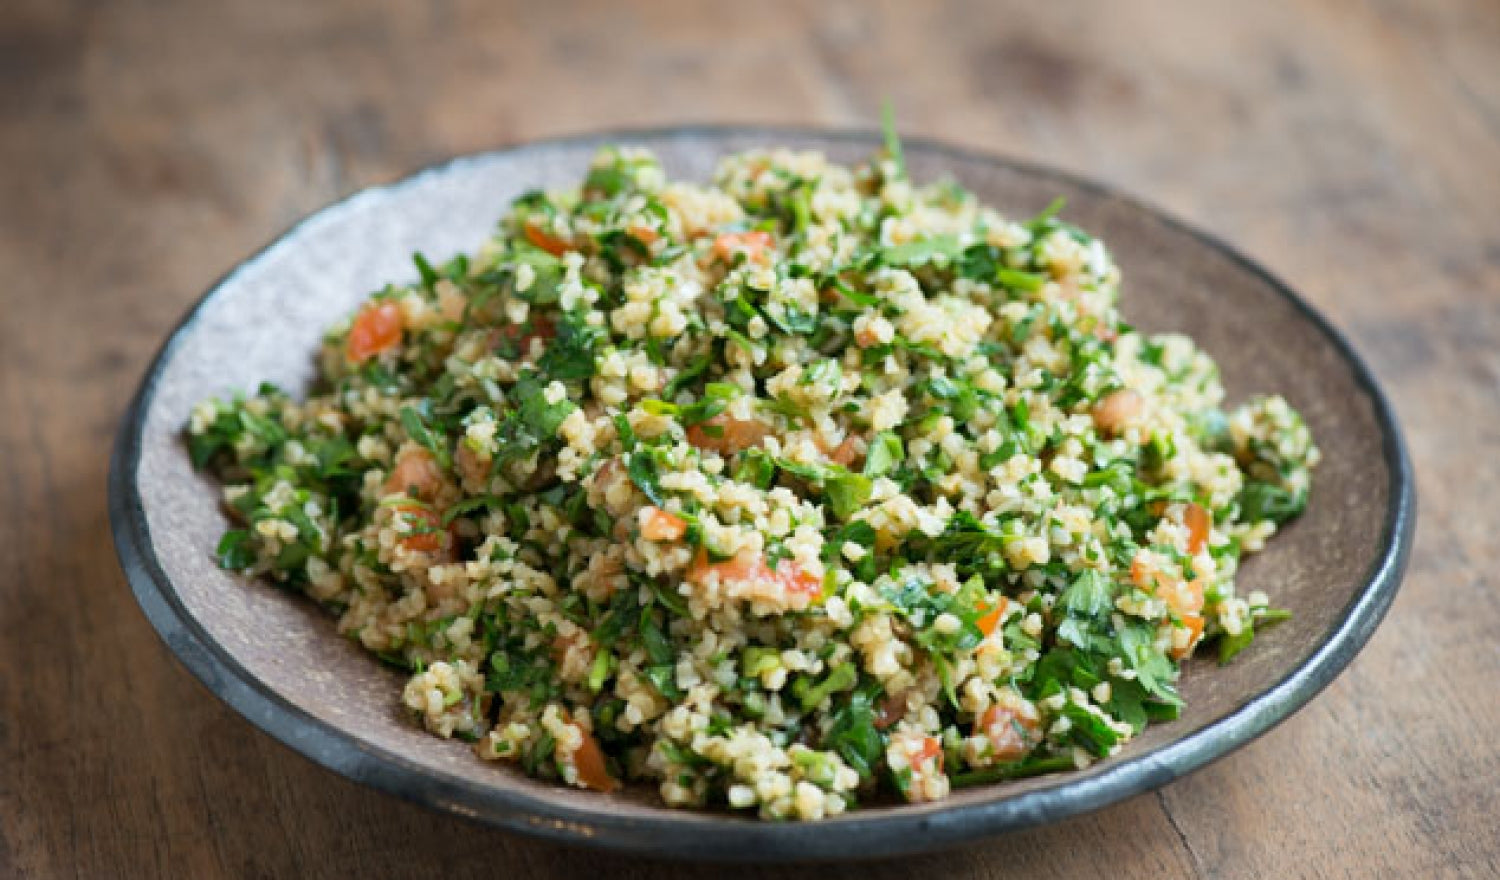 How To Make Tabbouleh Salad With Pomegranate Molasses Dressing